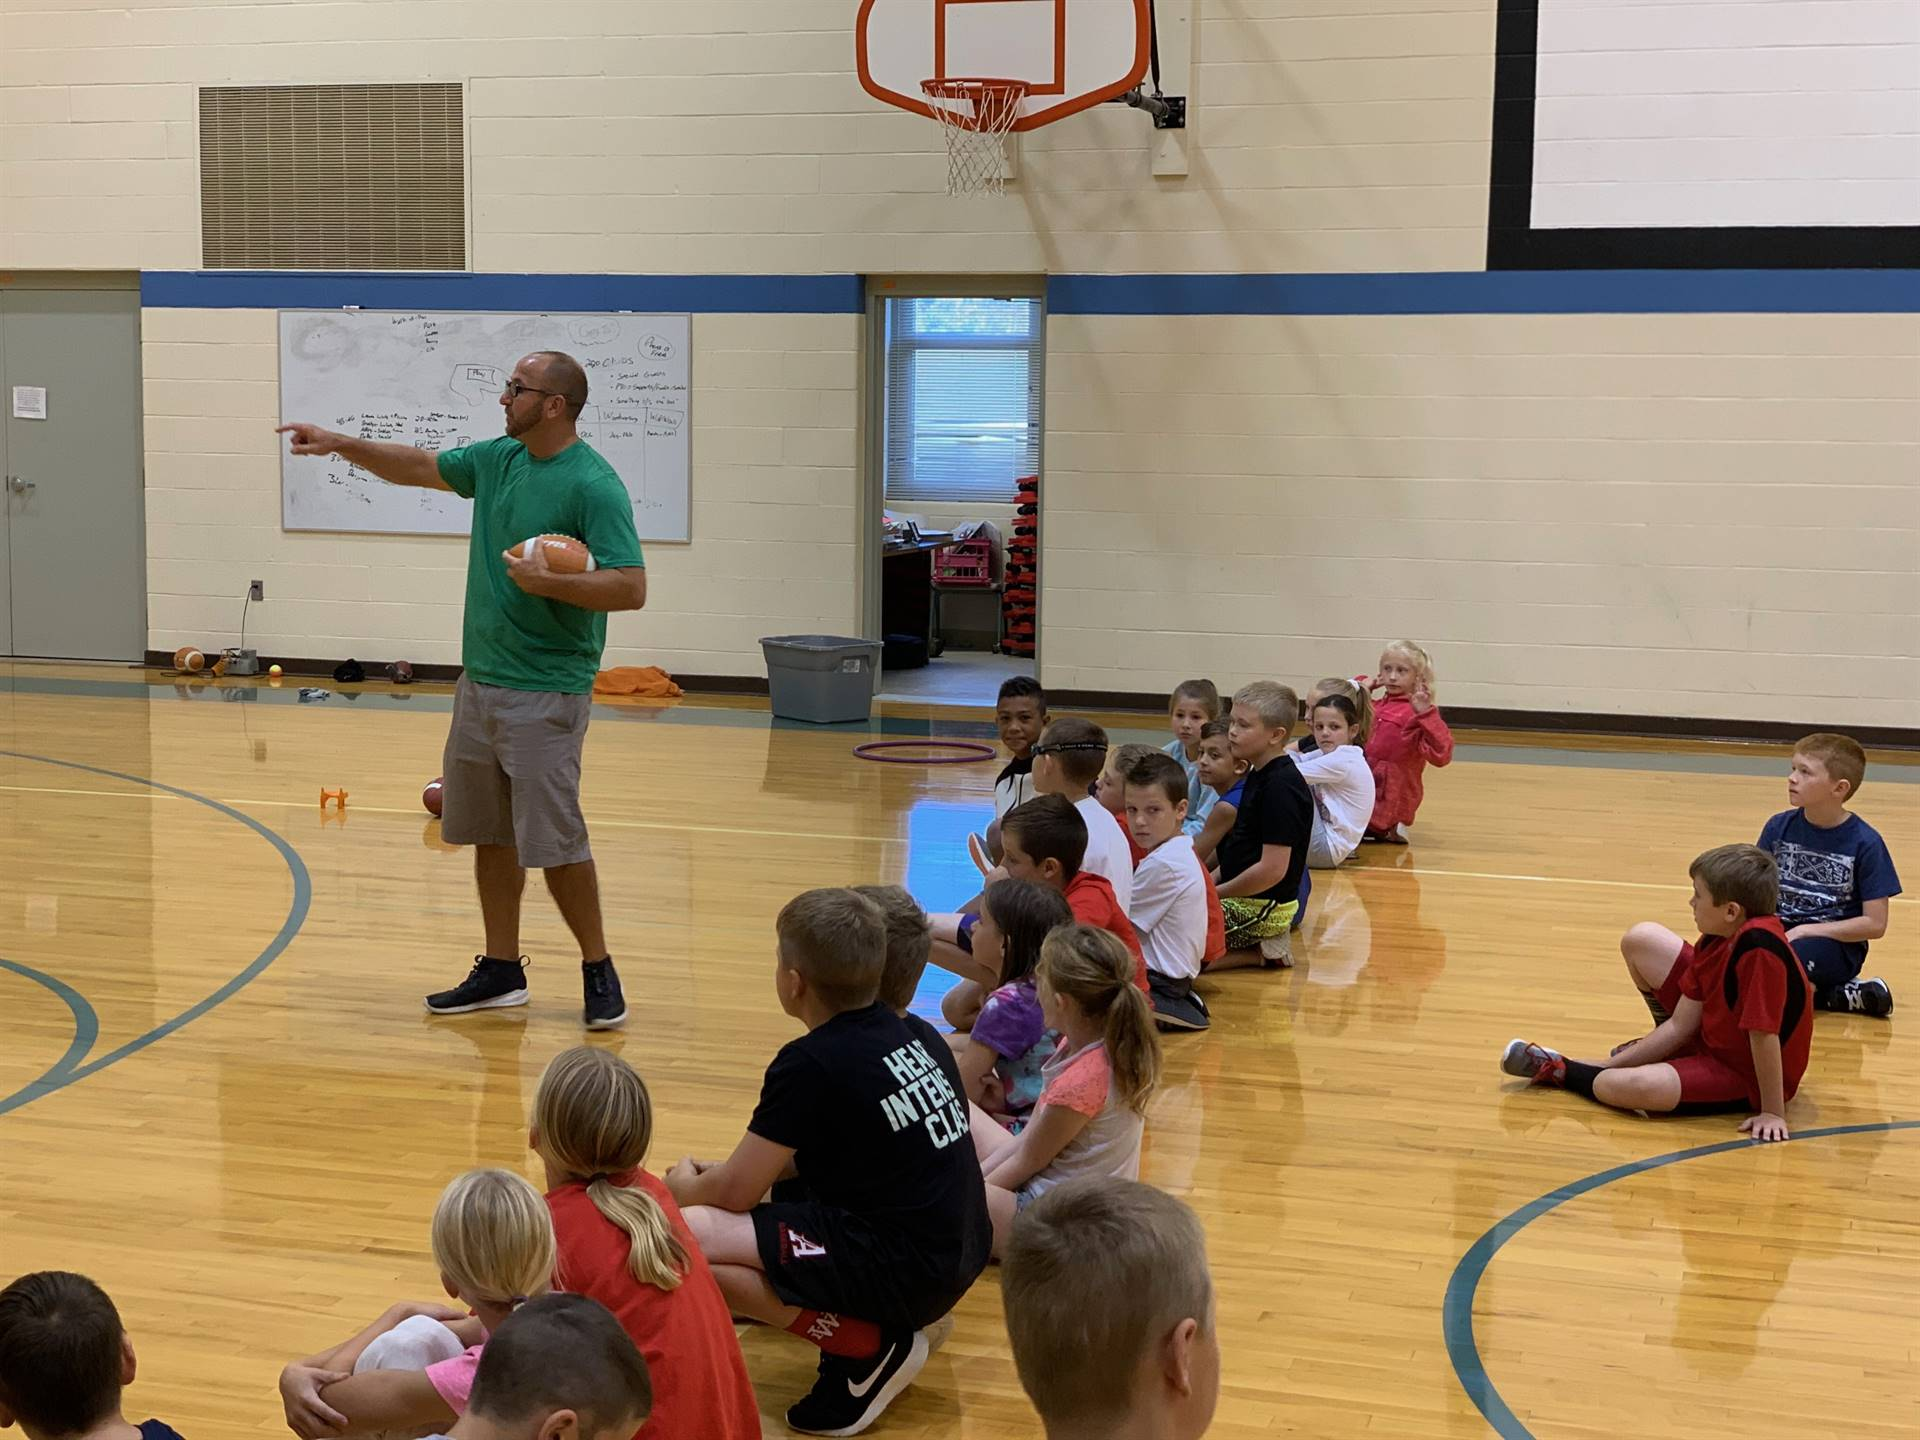 Mr. Ball provides instruction to fourth graders on the basics of kicking in football